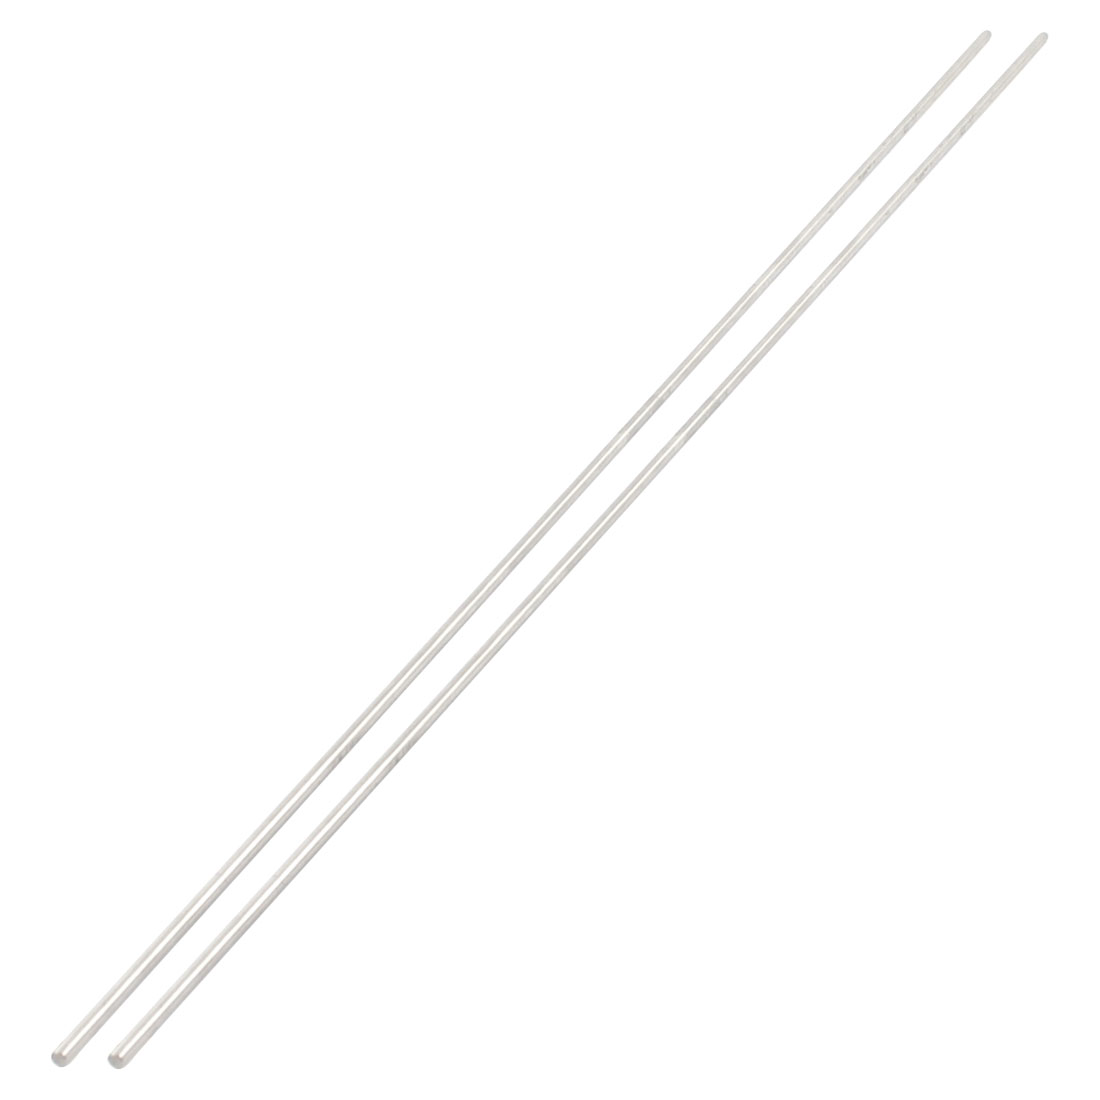 2 Pcs 2.5mm Diameter 450mm Length Stainless Steel RC Car Gear Axle Straight Rod Stick